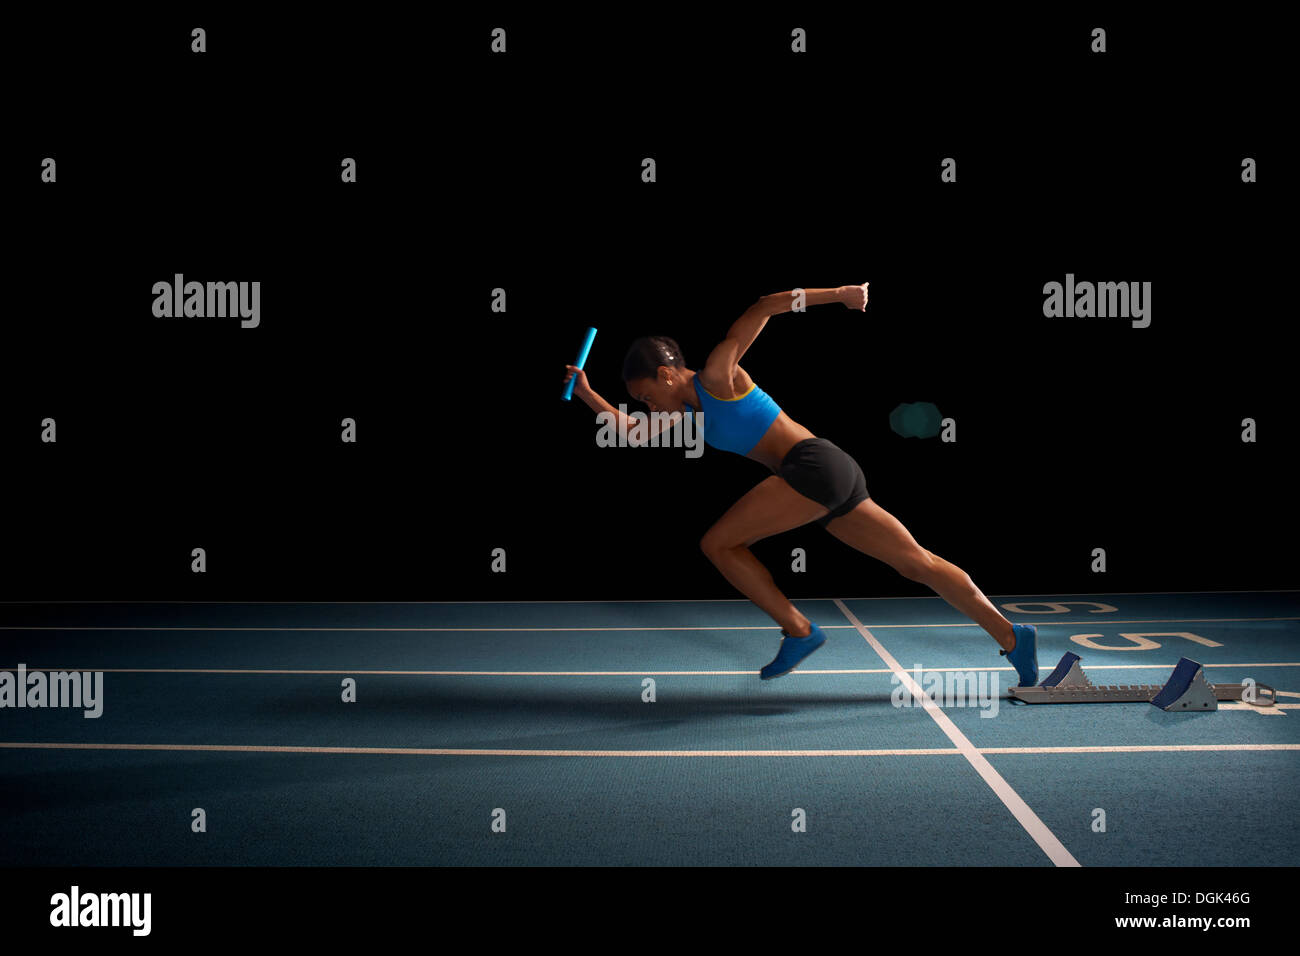 Young female athlete in relay race - Stock Image